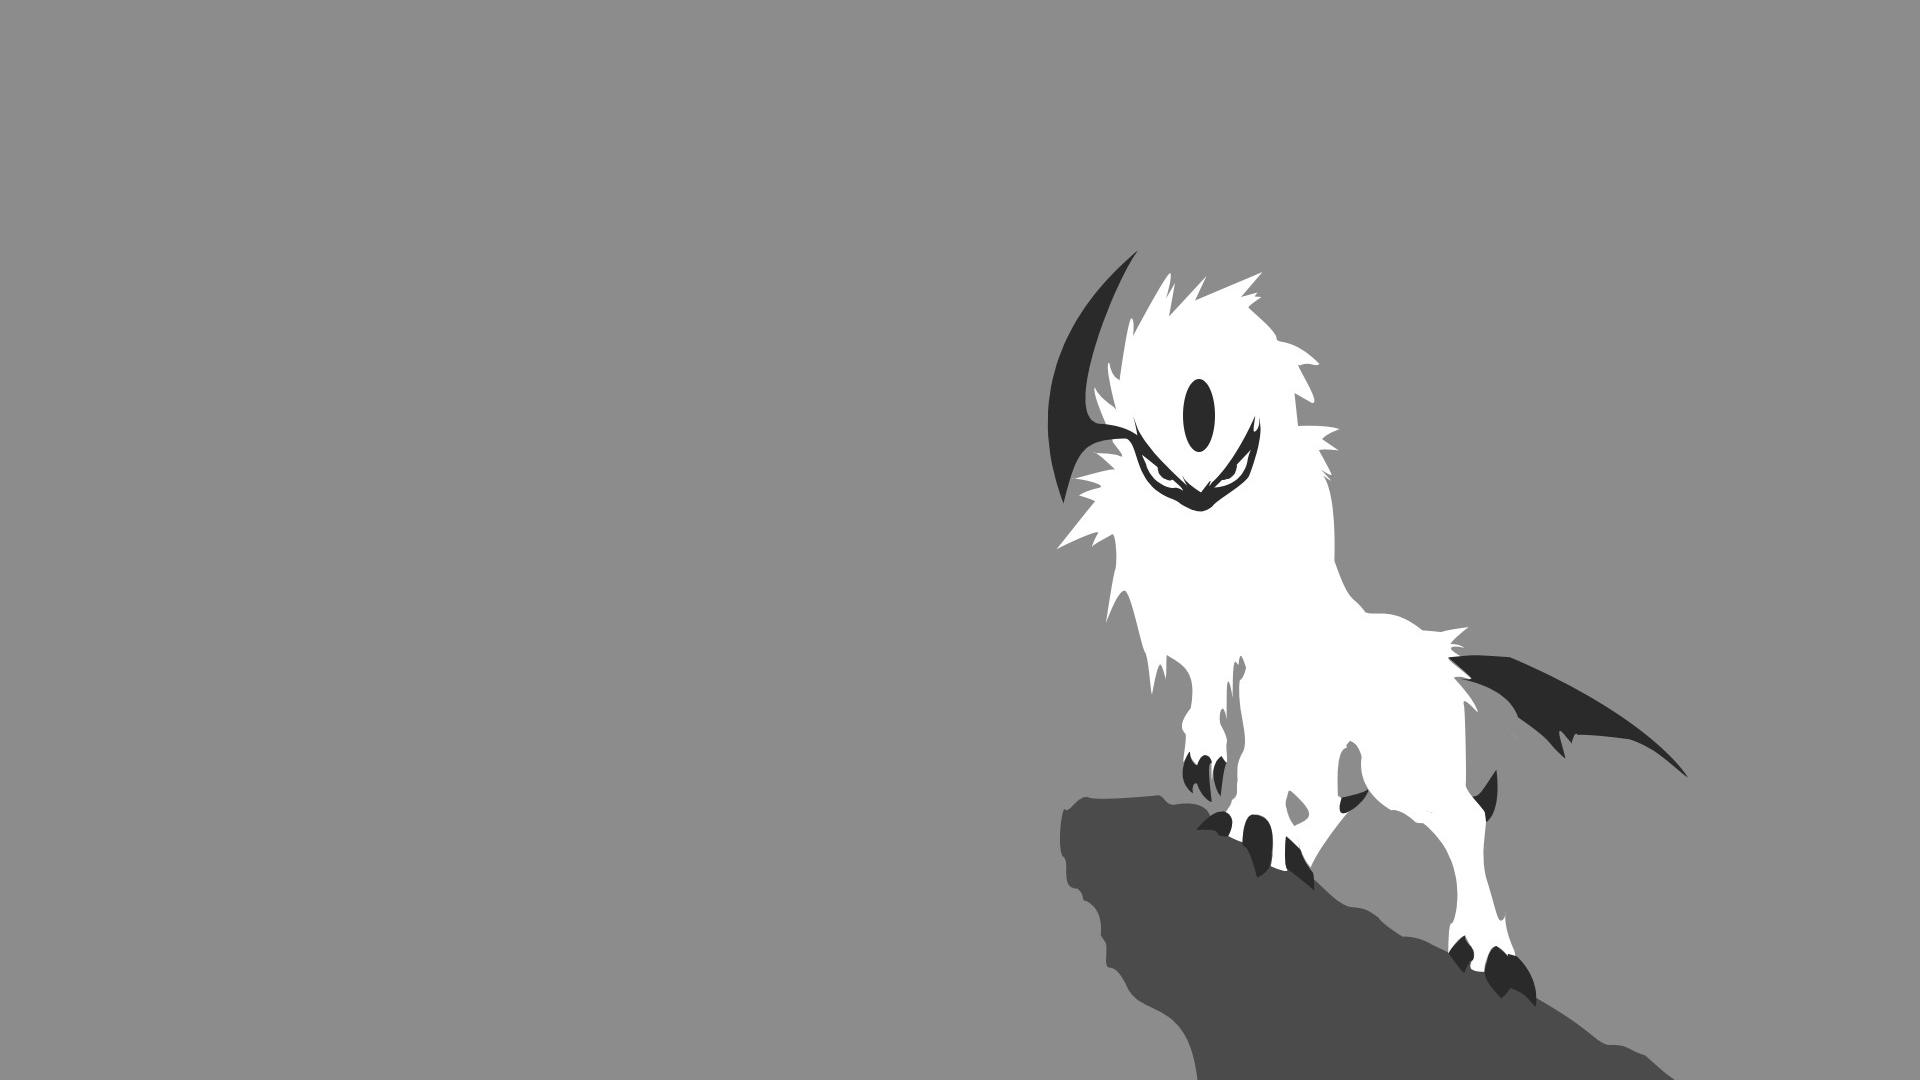 Absol pokemon simple background wallpaper 77147 1920x1080